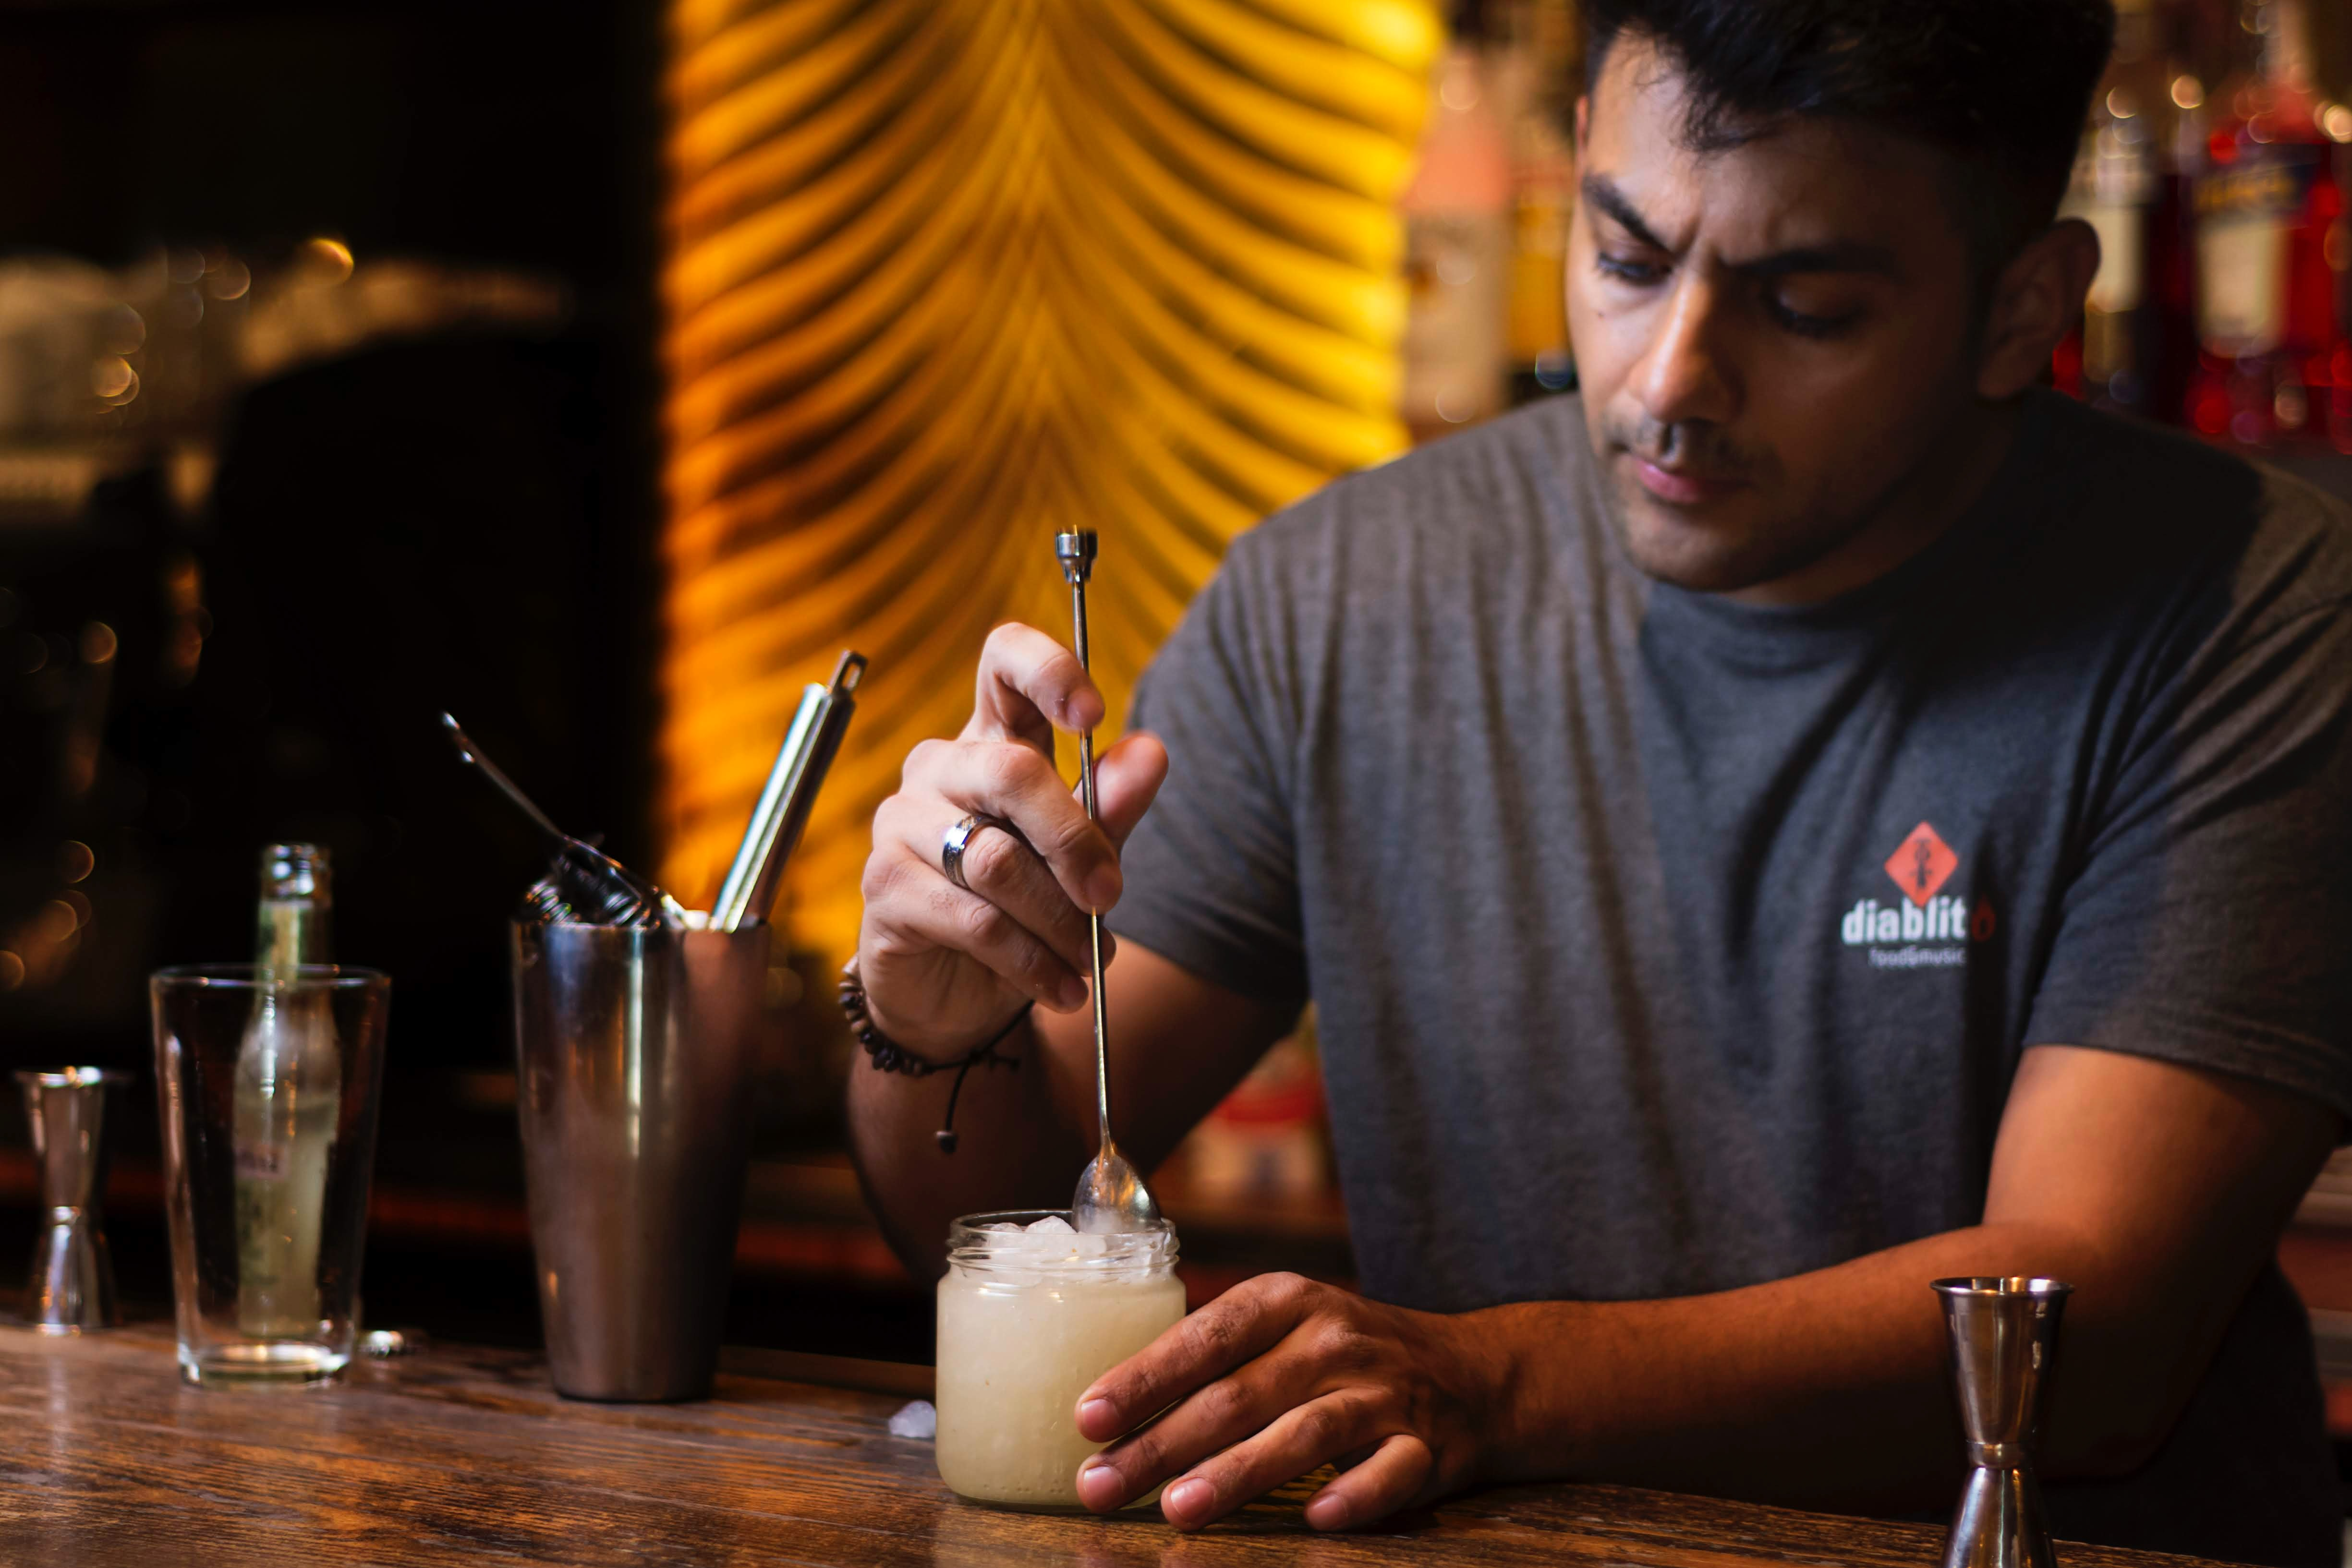 Bartender using a bar spoon to stir cocktail.